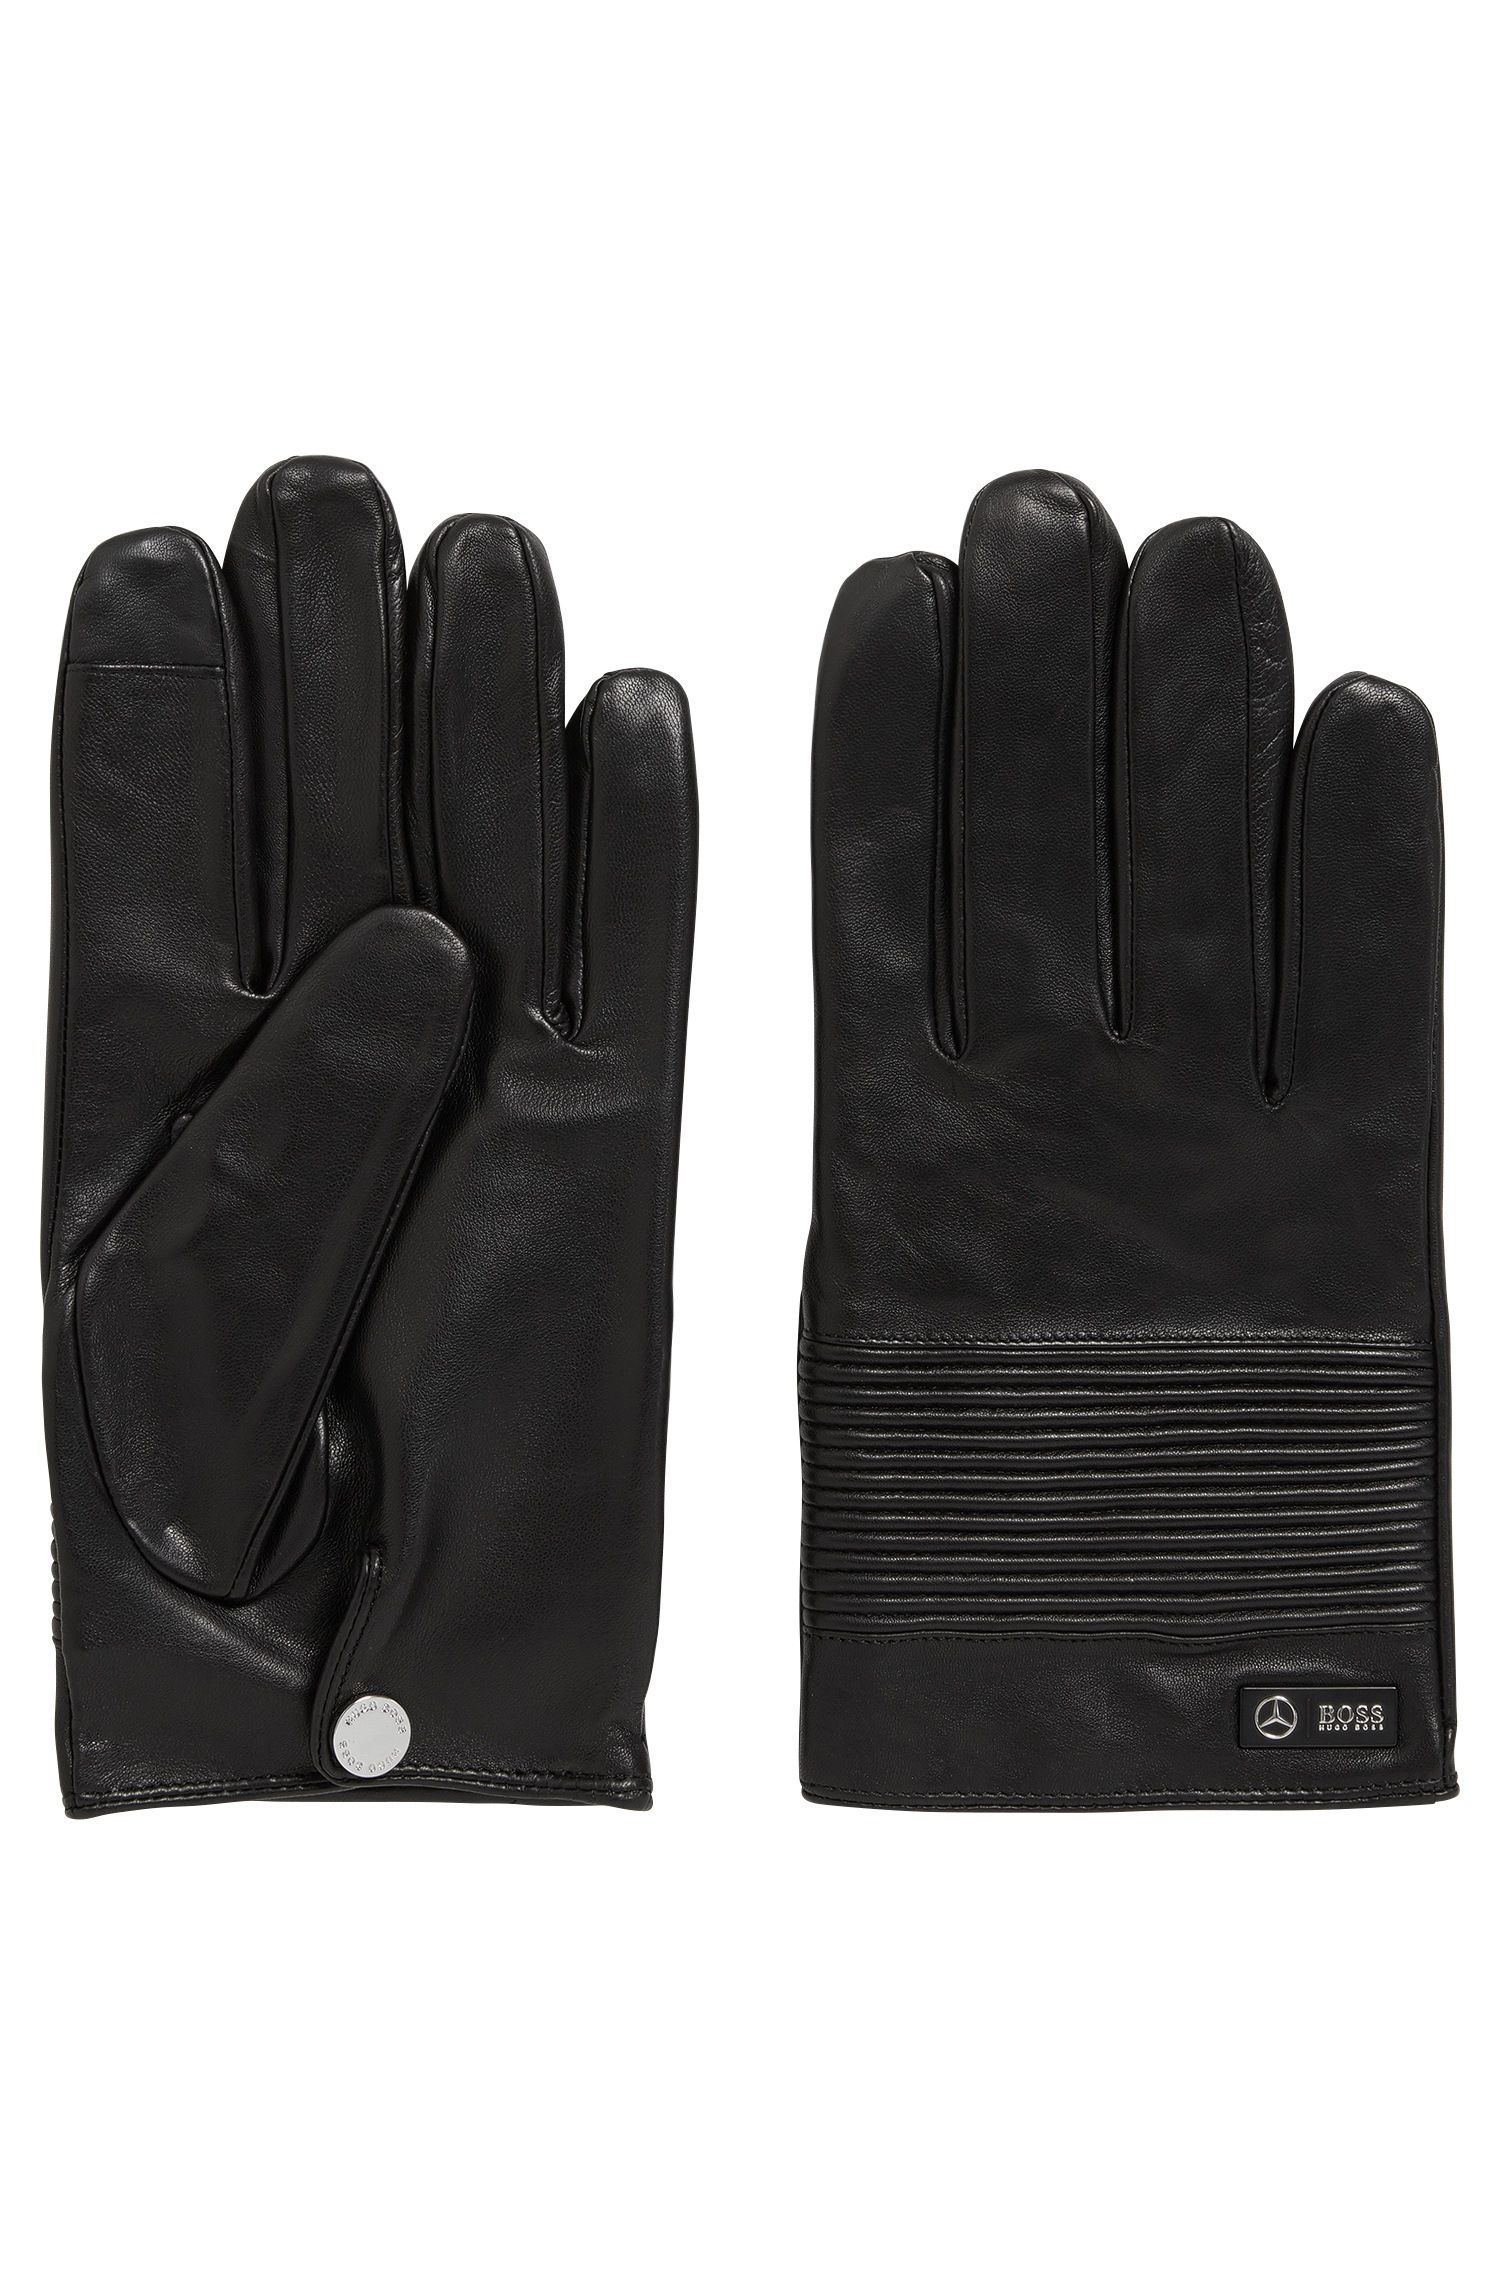 943db9db1d8 Mercedes-Benz Collection nappa leather gloves with smocked detail ...